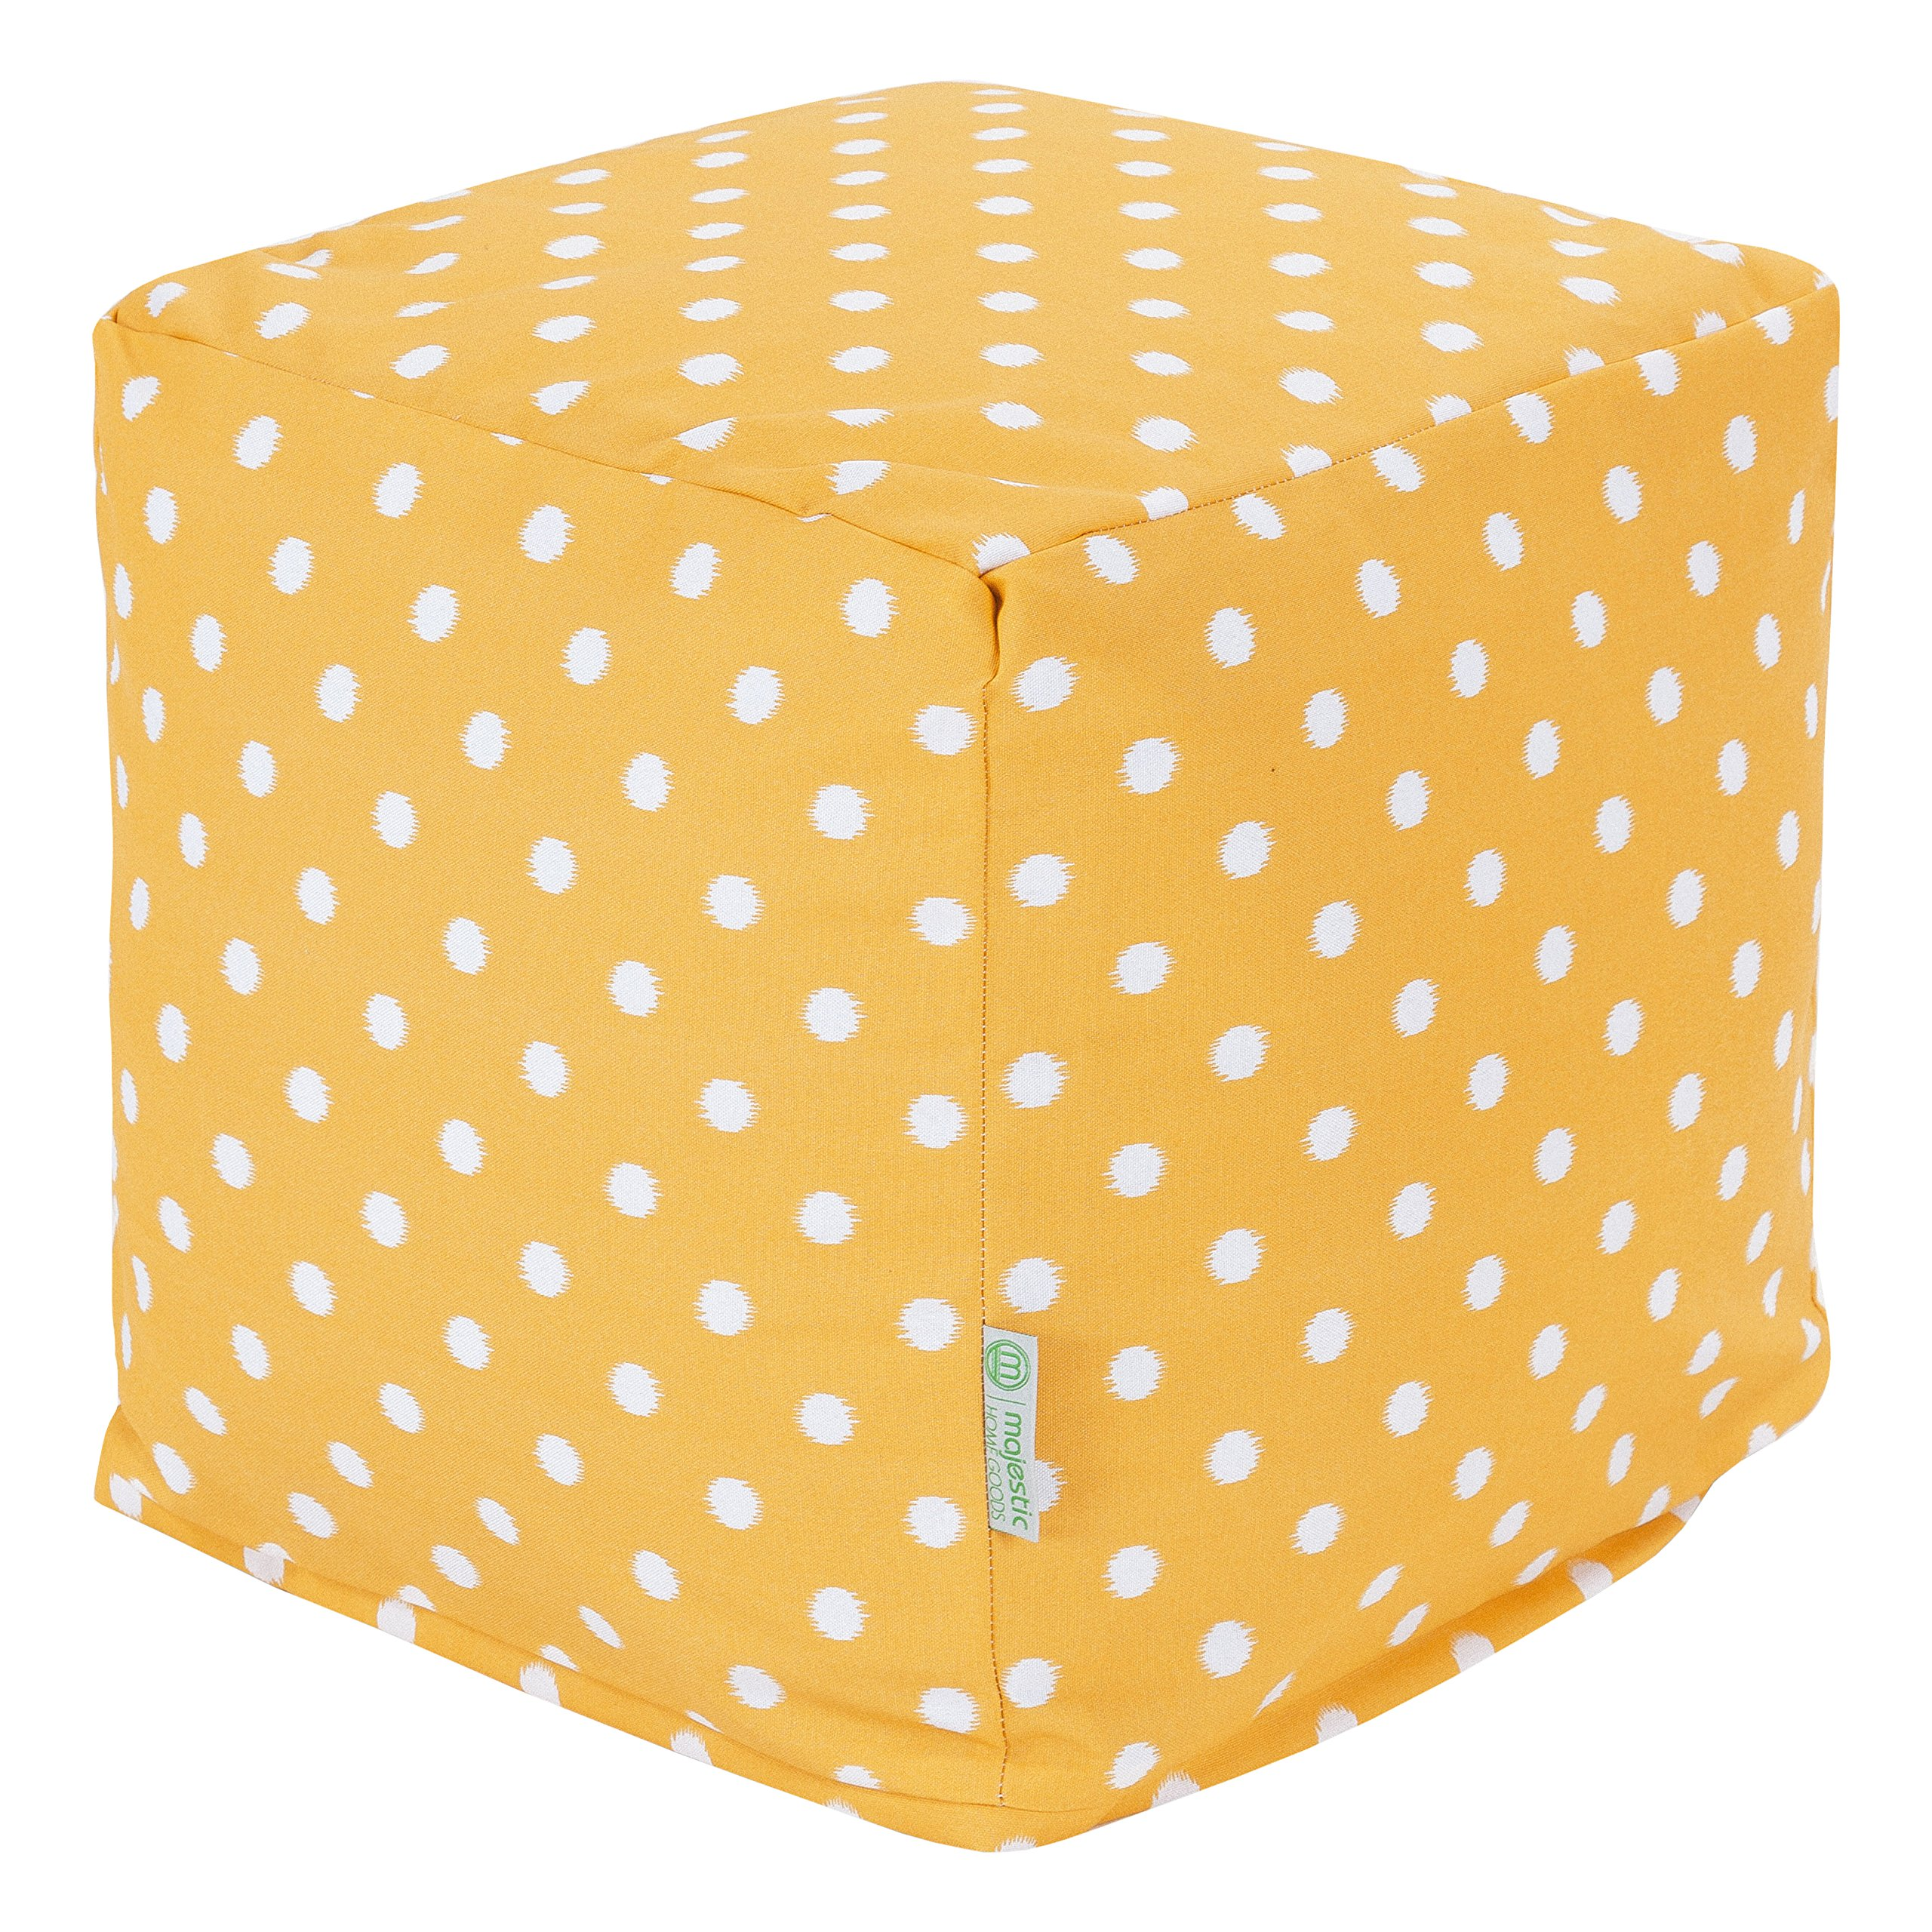 Majestic Home Goods Ikat Dot Cube, Small, Citrus